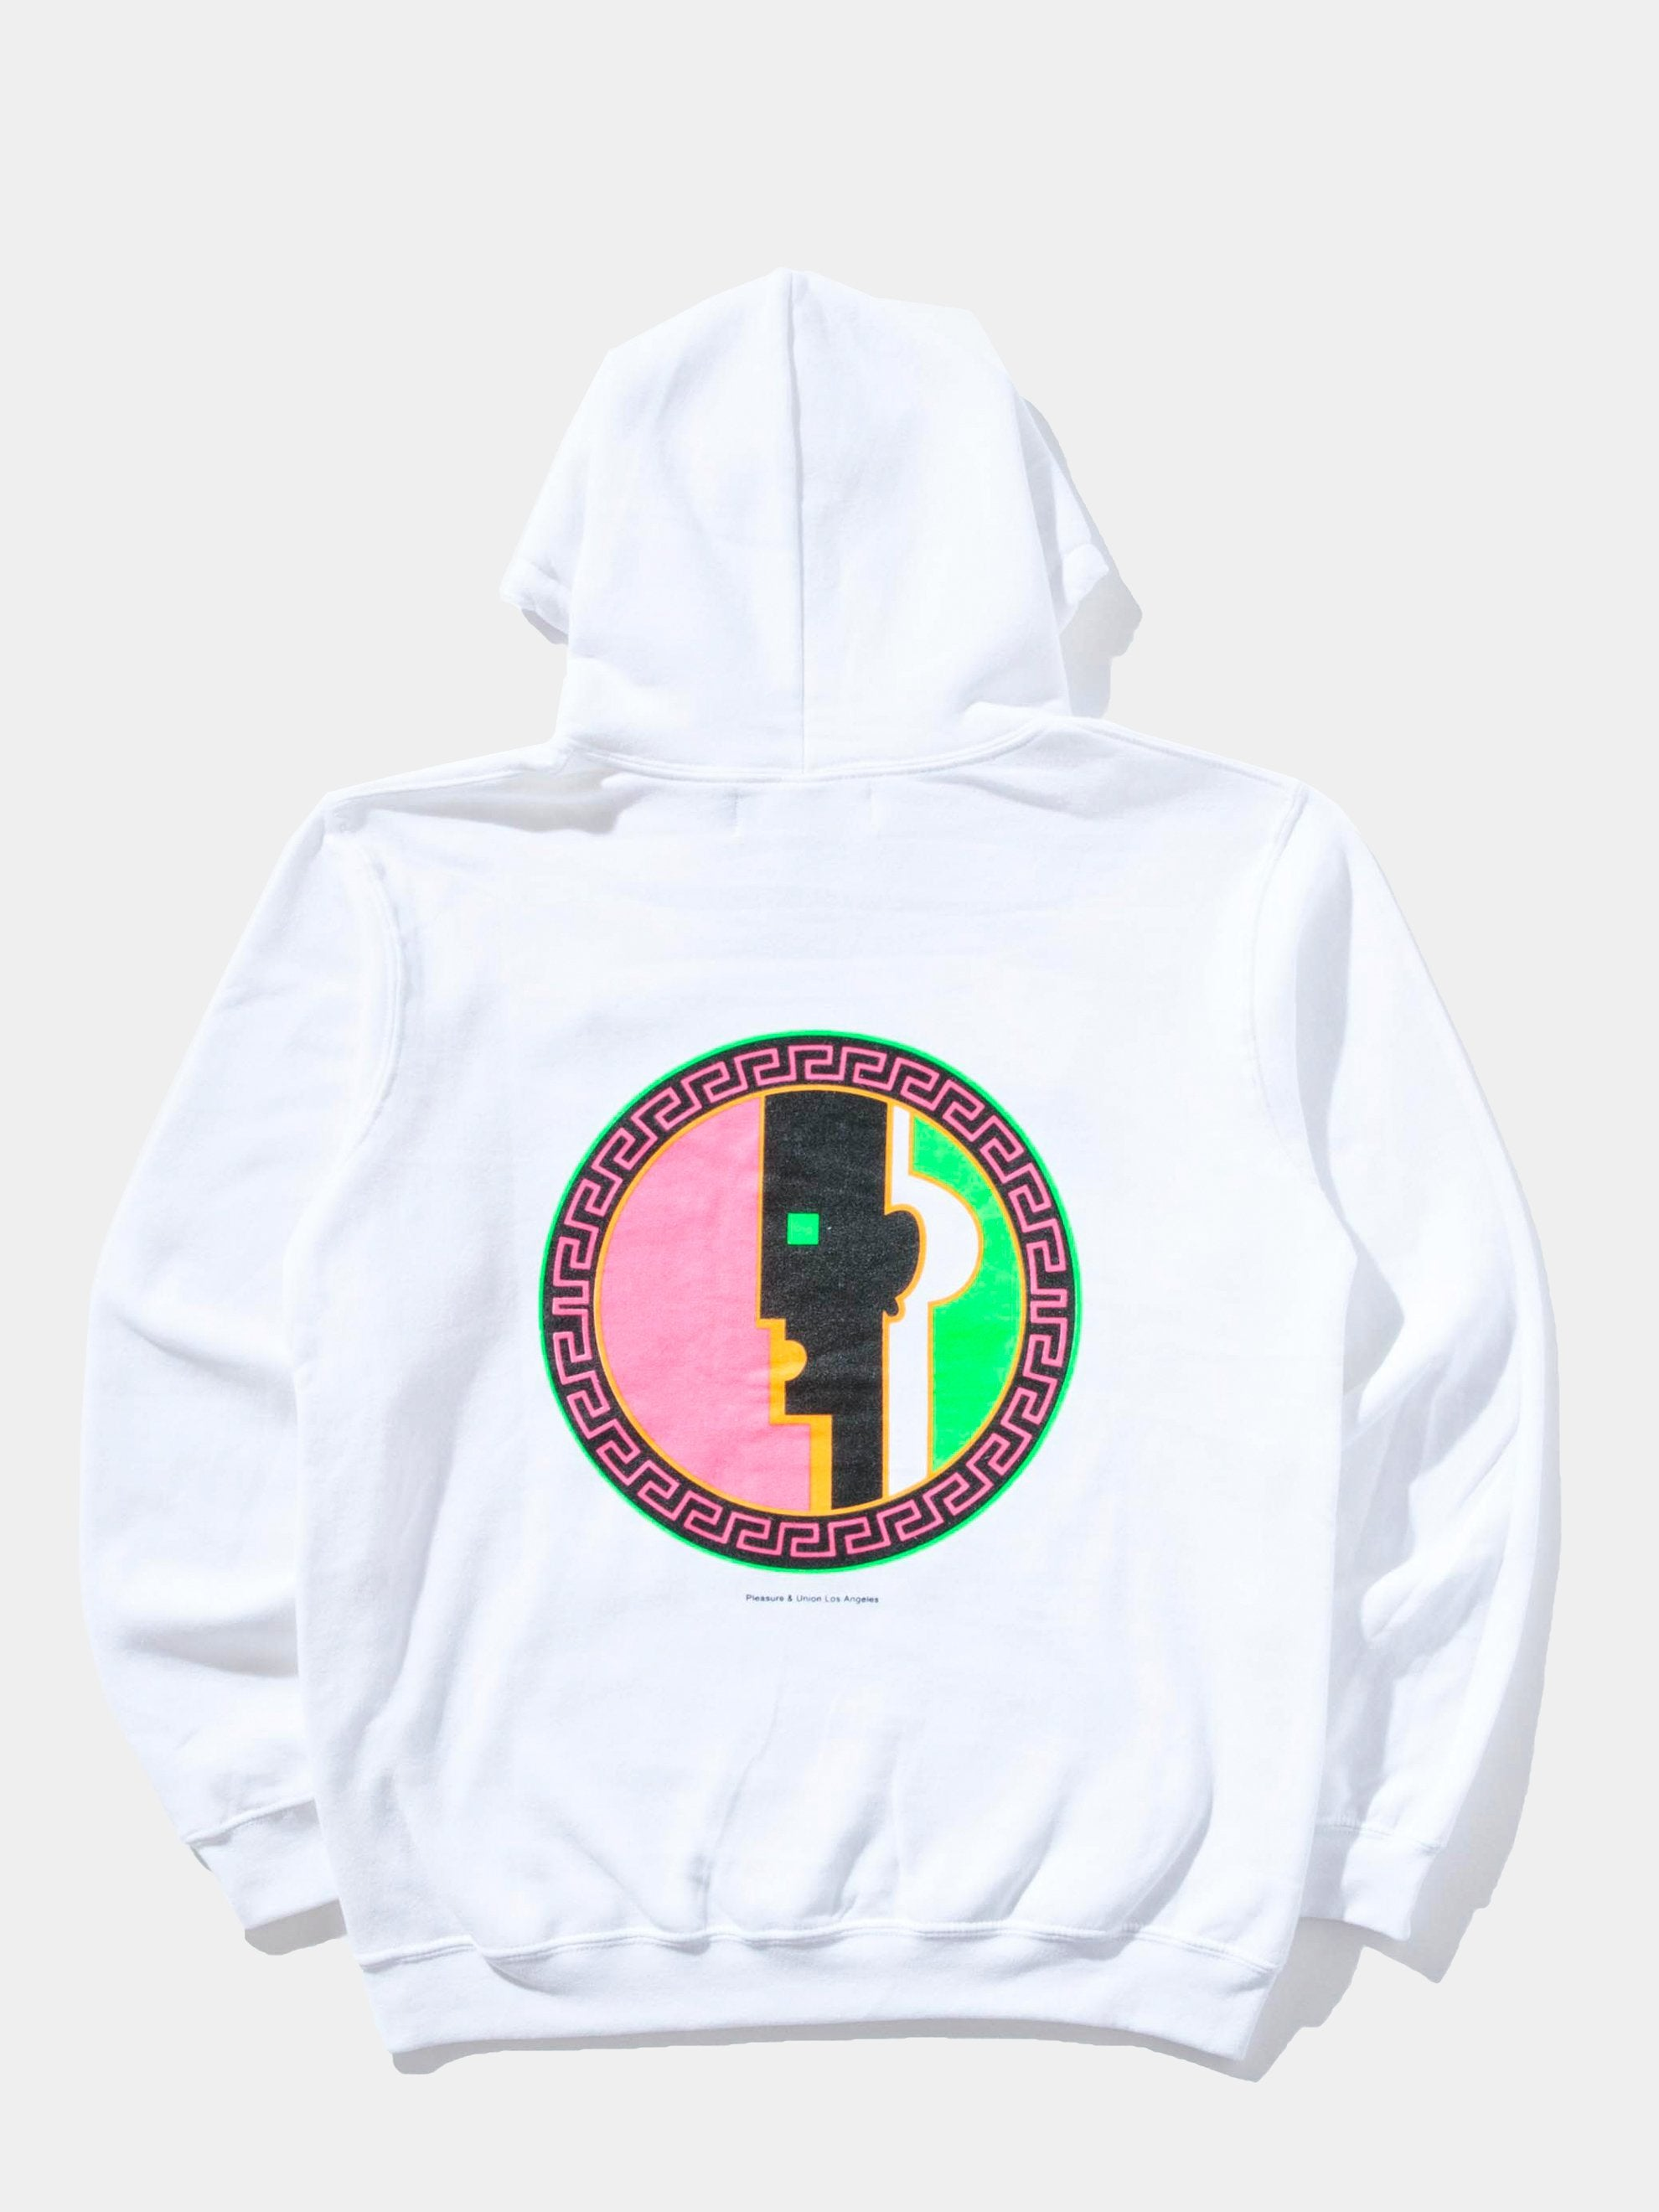 Pleasure x Union D'Amour Hoodie